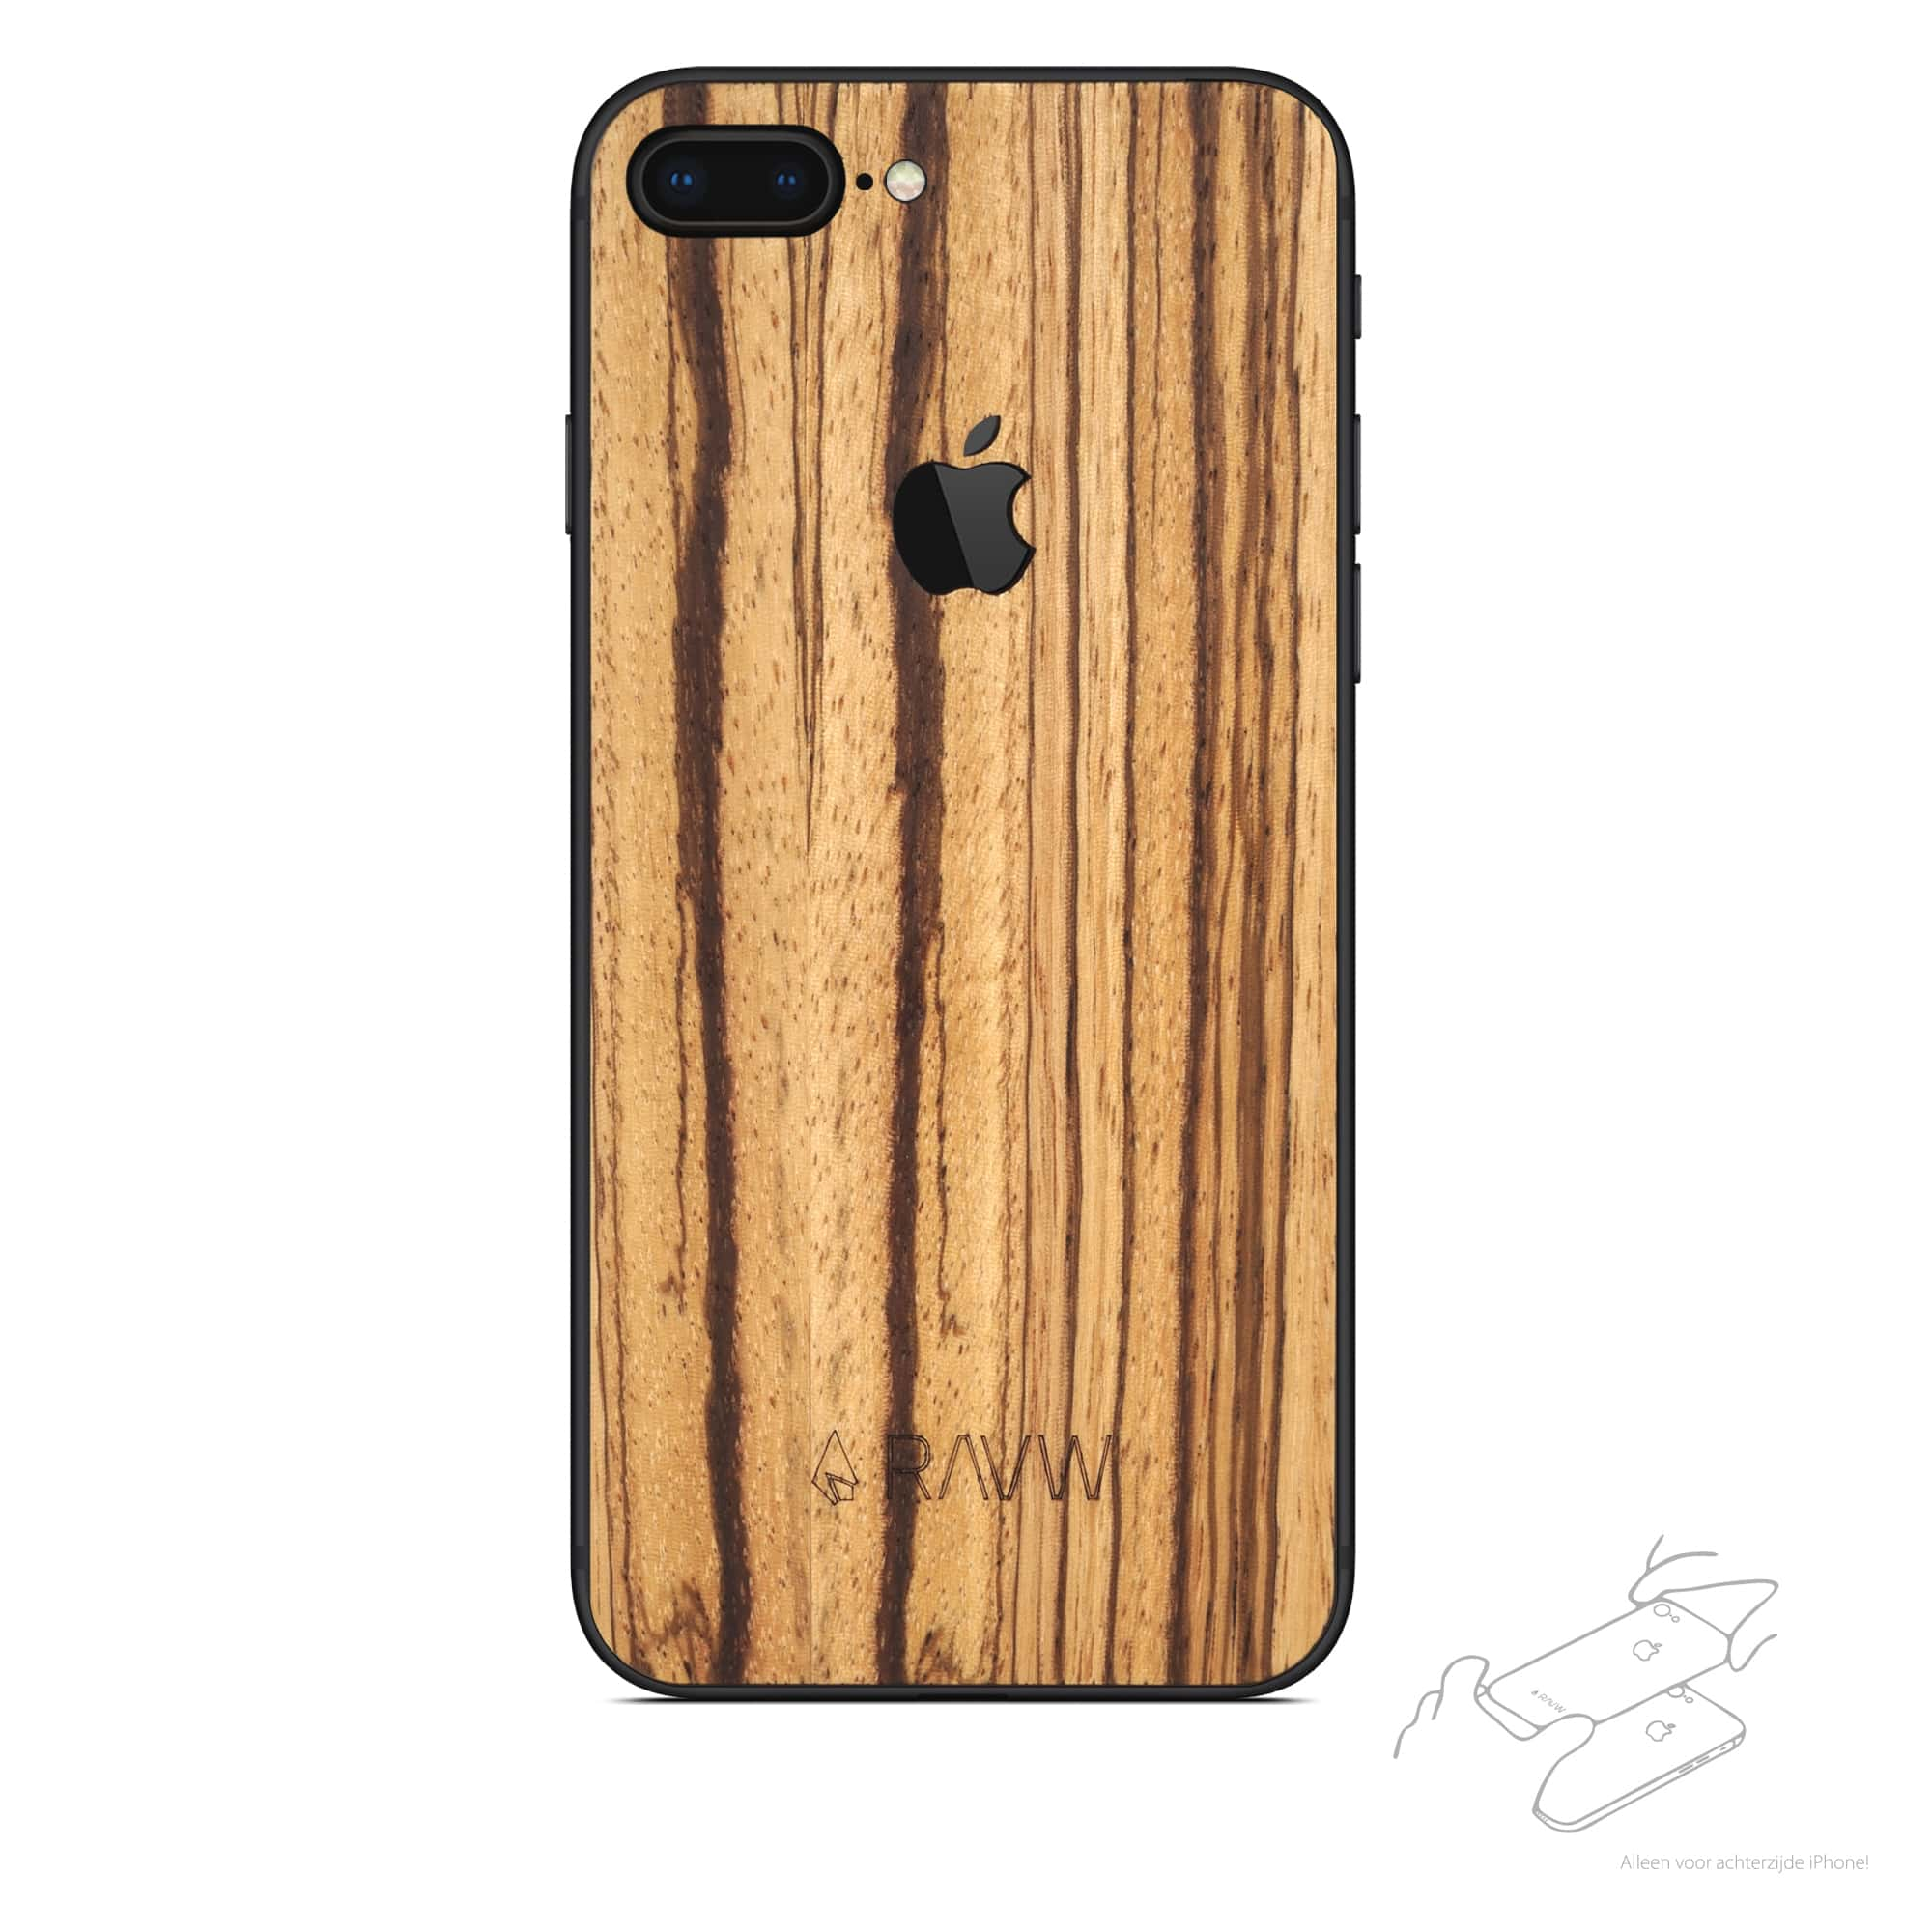 Rauw Cover - iPhone 8 Plus - Time For Wood